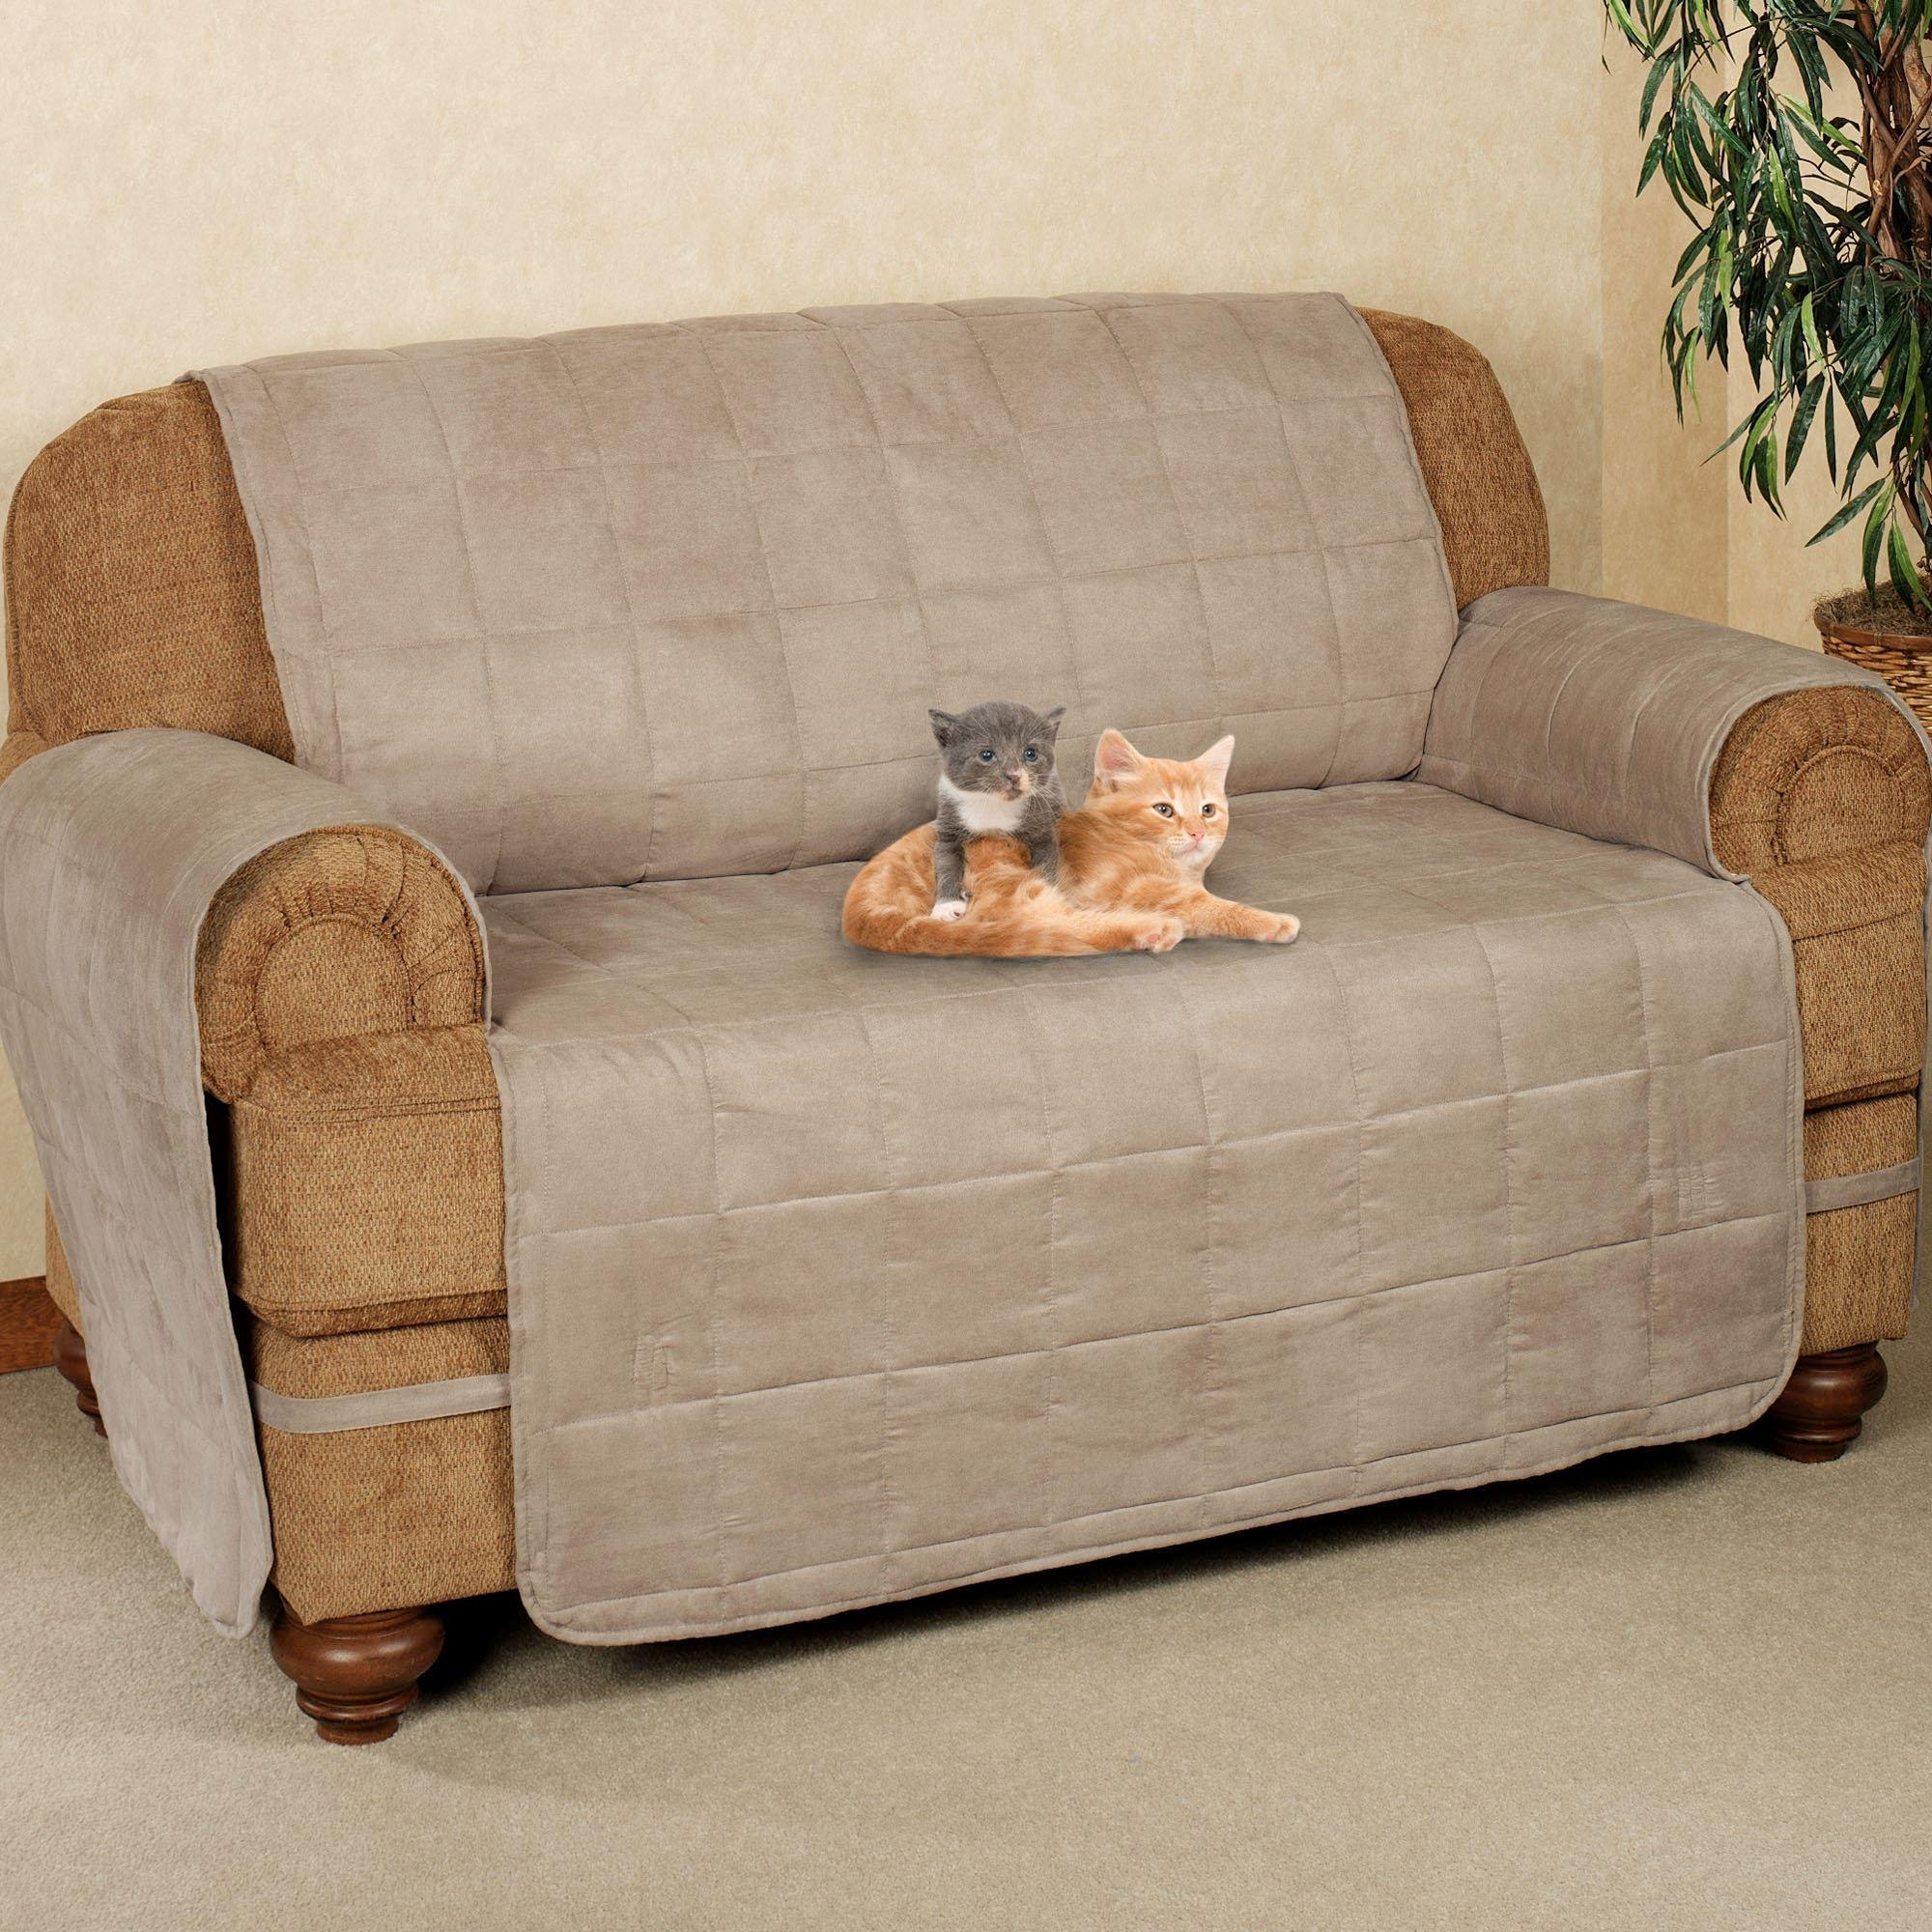 Sofas Center : Cat Proof Material For Sofa Materialcat Ikeacat Intended For Cat Proof Sofas (View 3 of 20)